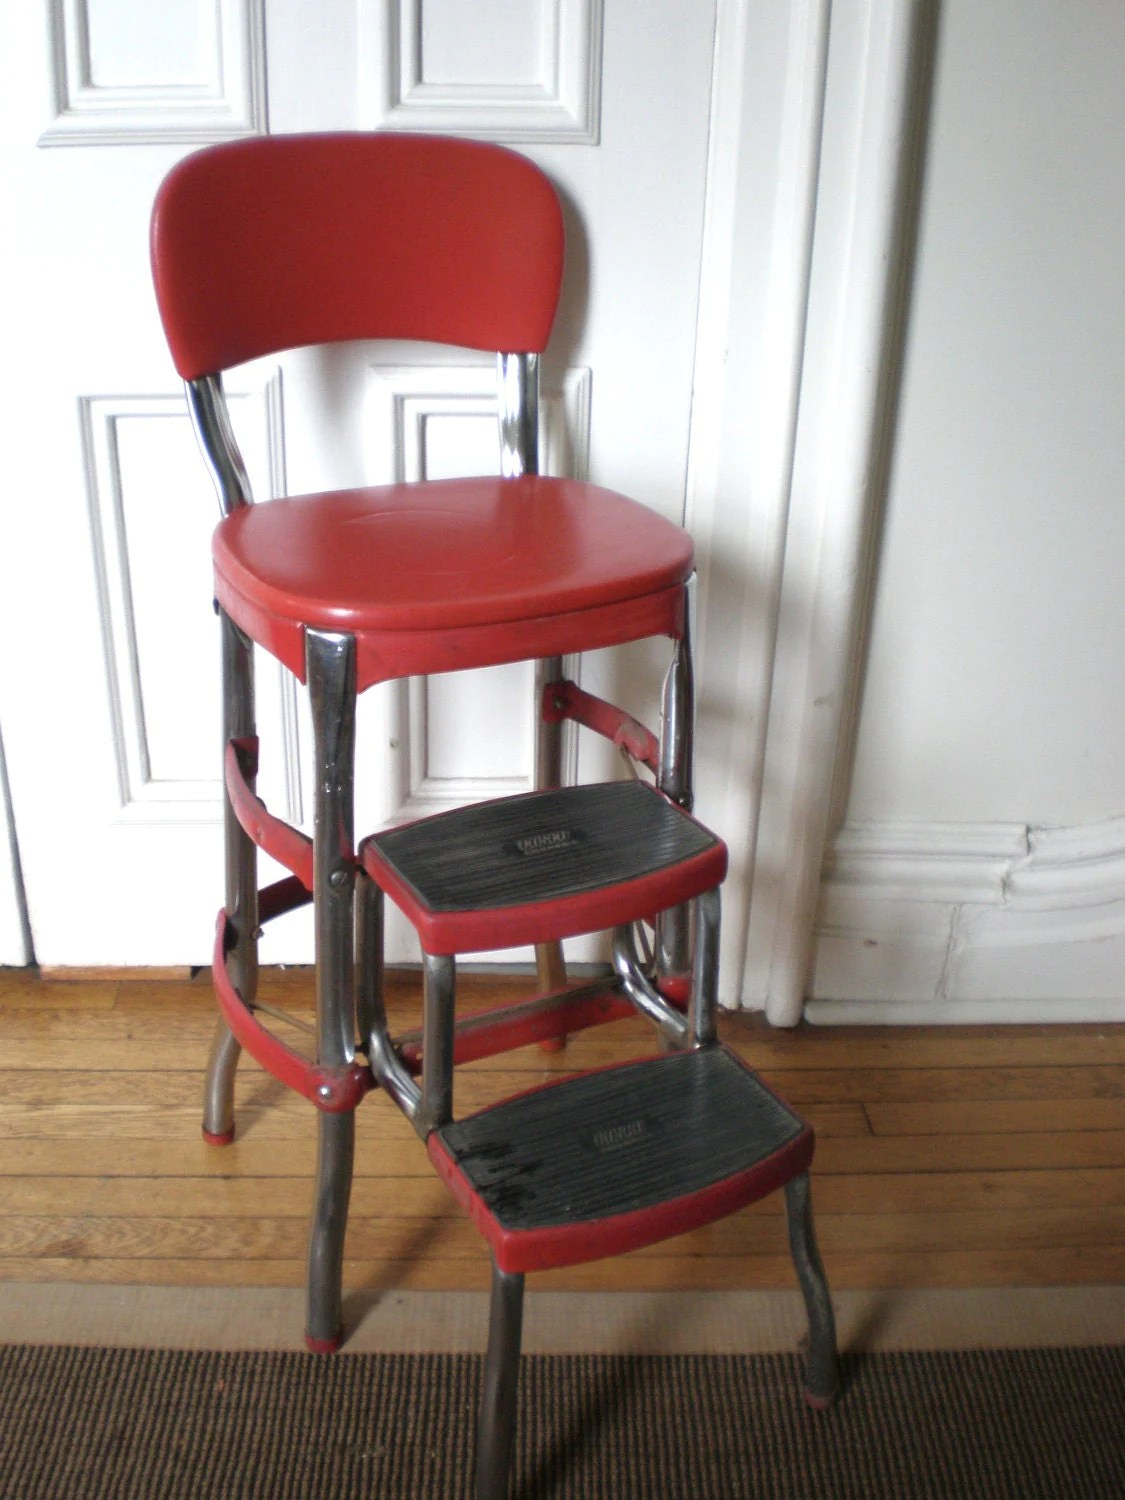 Stool Chair Red Cosco Kitchen Chair With Step Stool